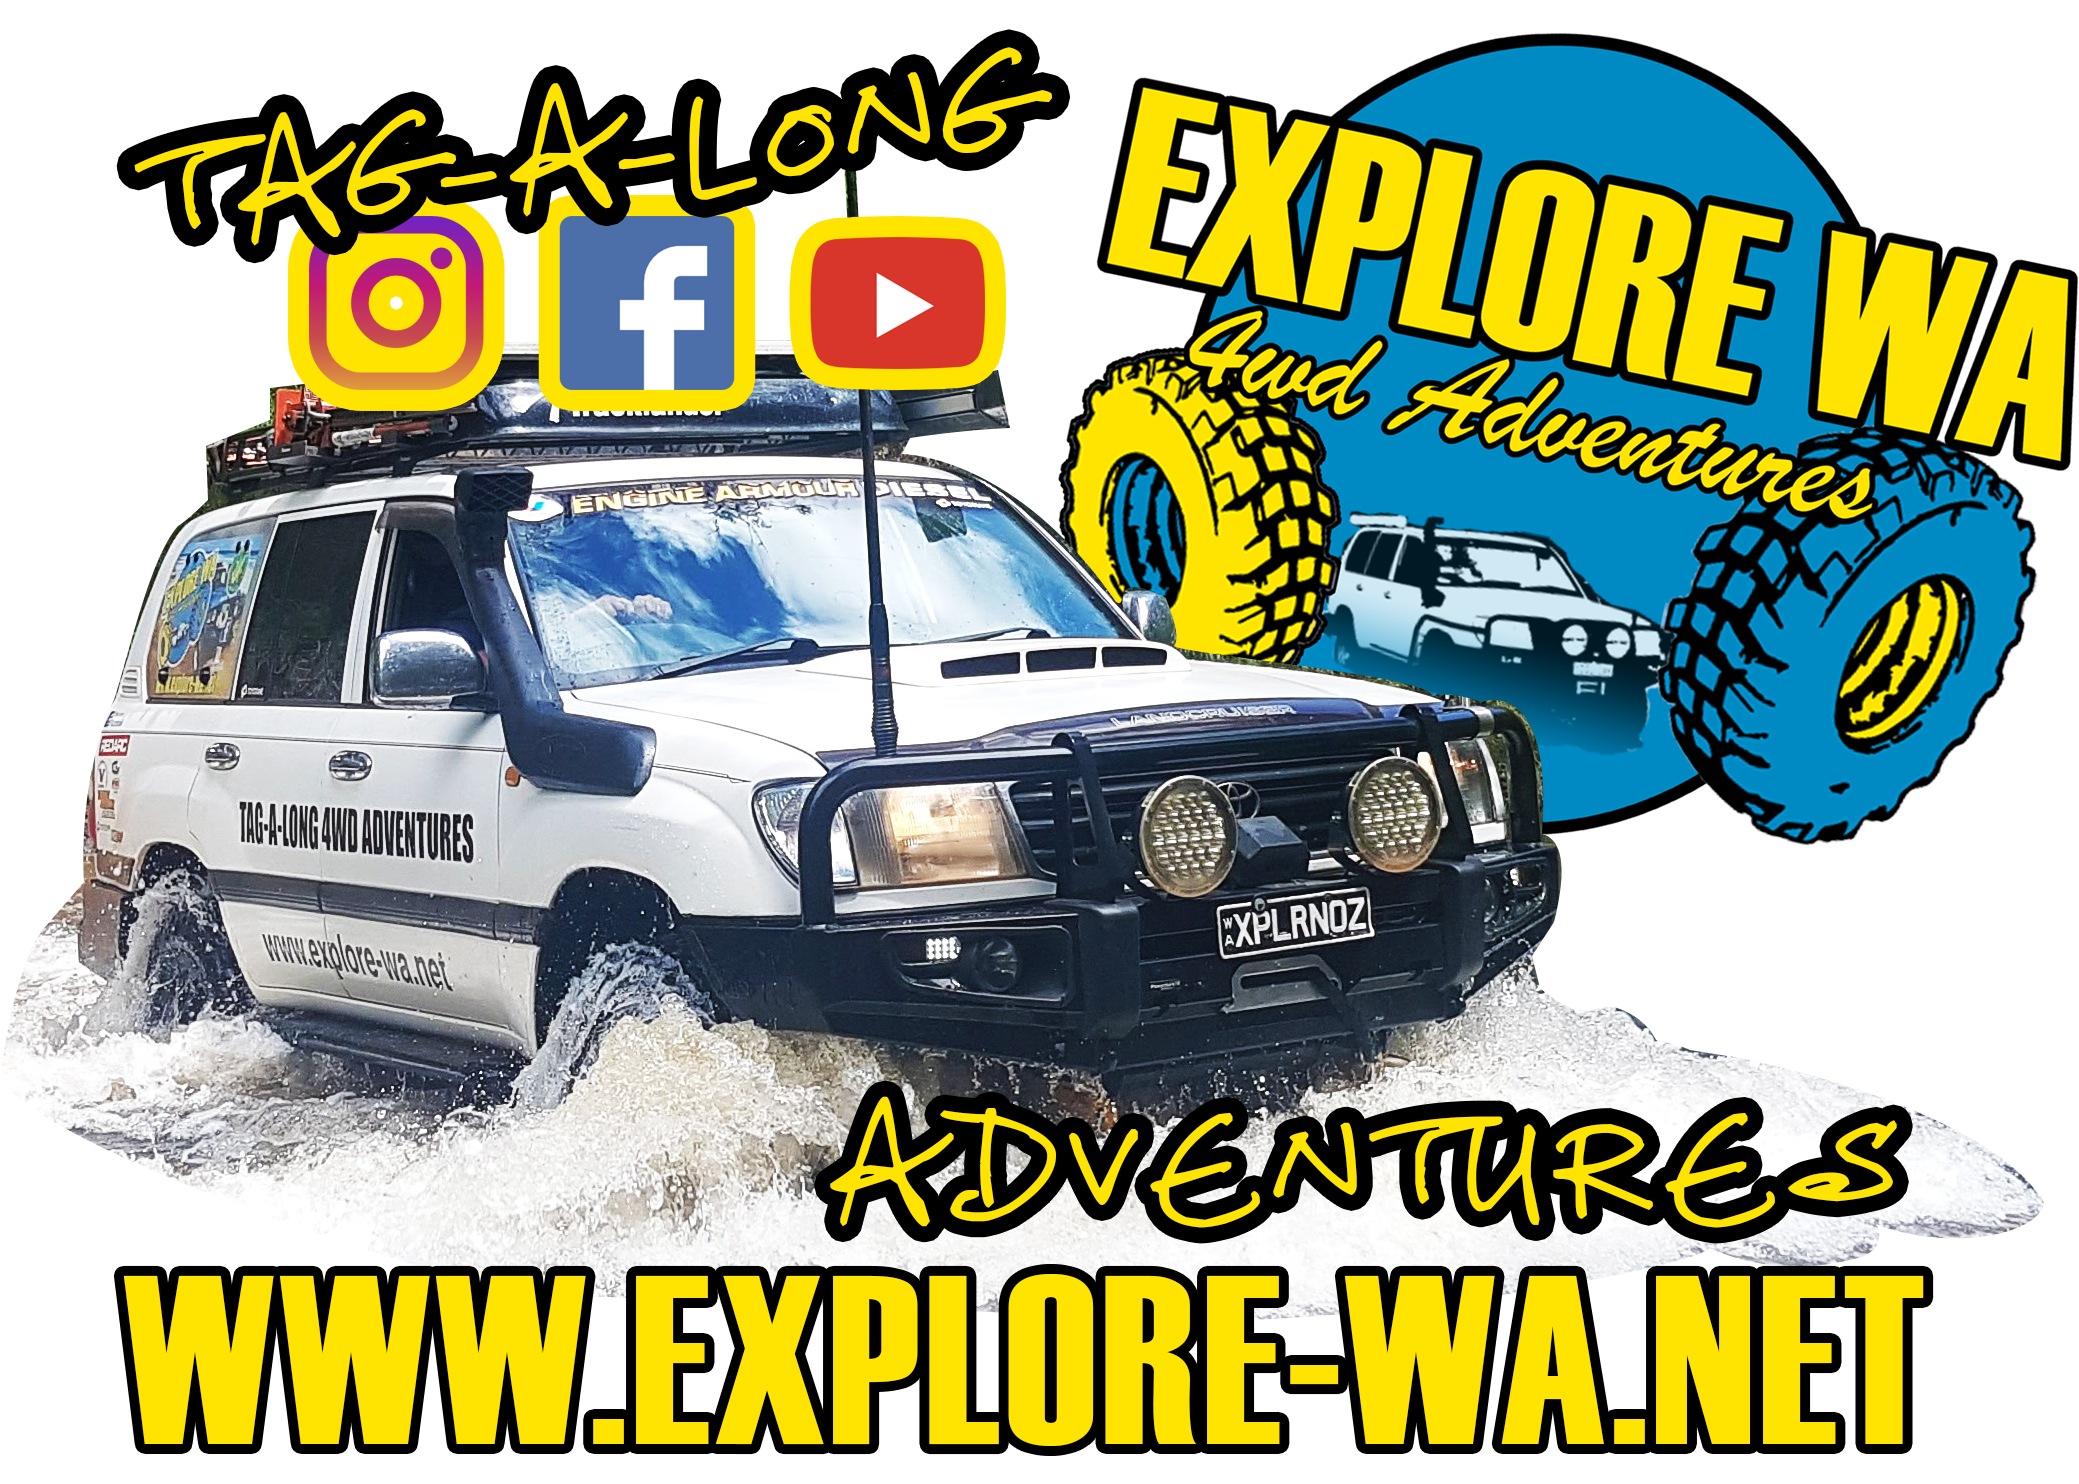 Join our freinds on tour at Explore WA 4wd